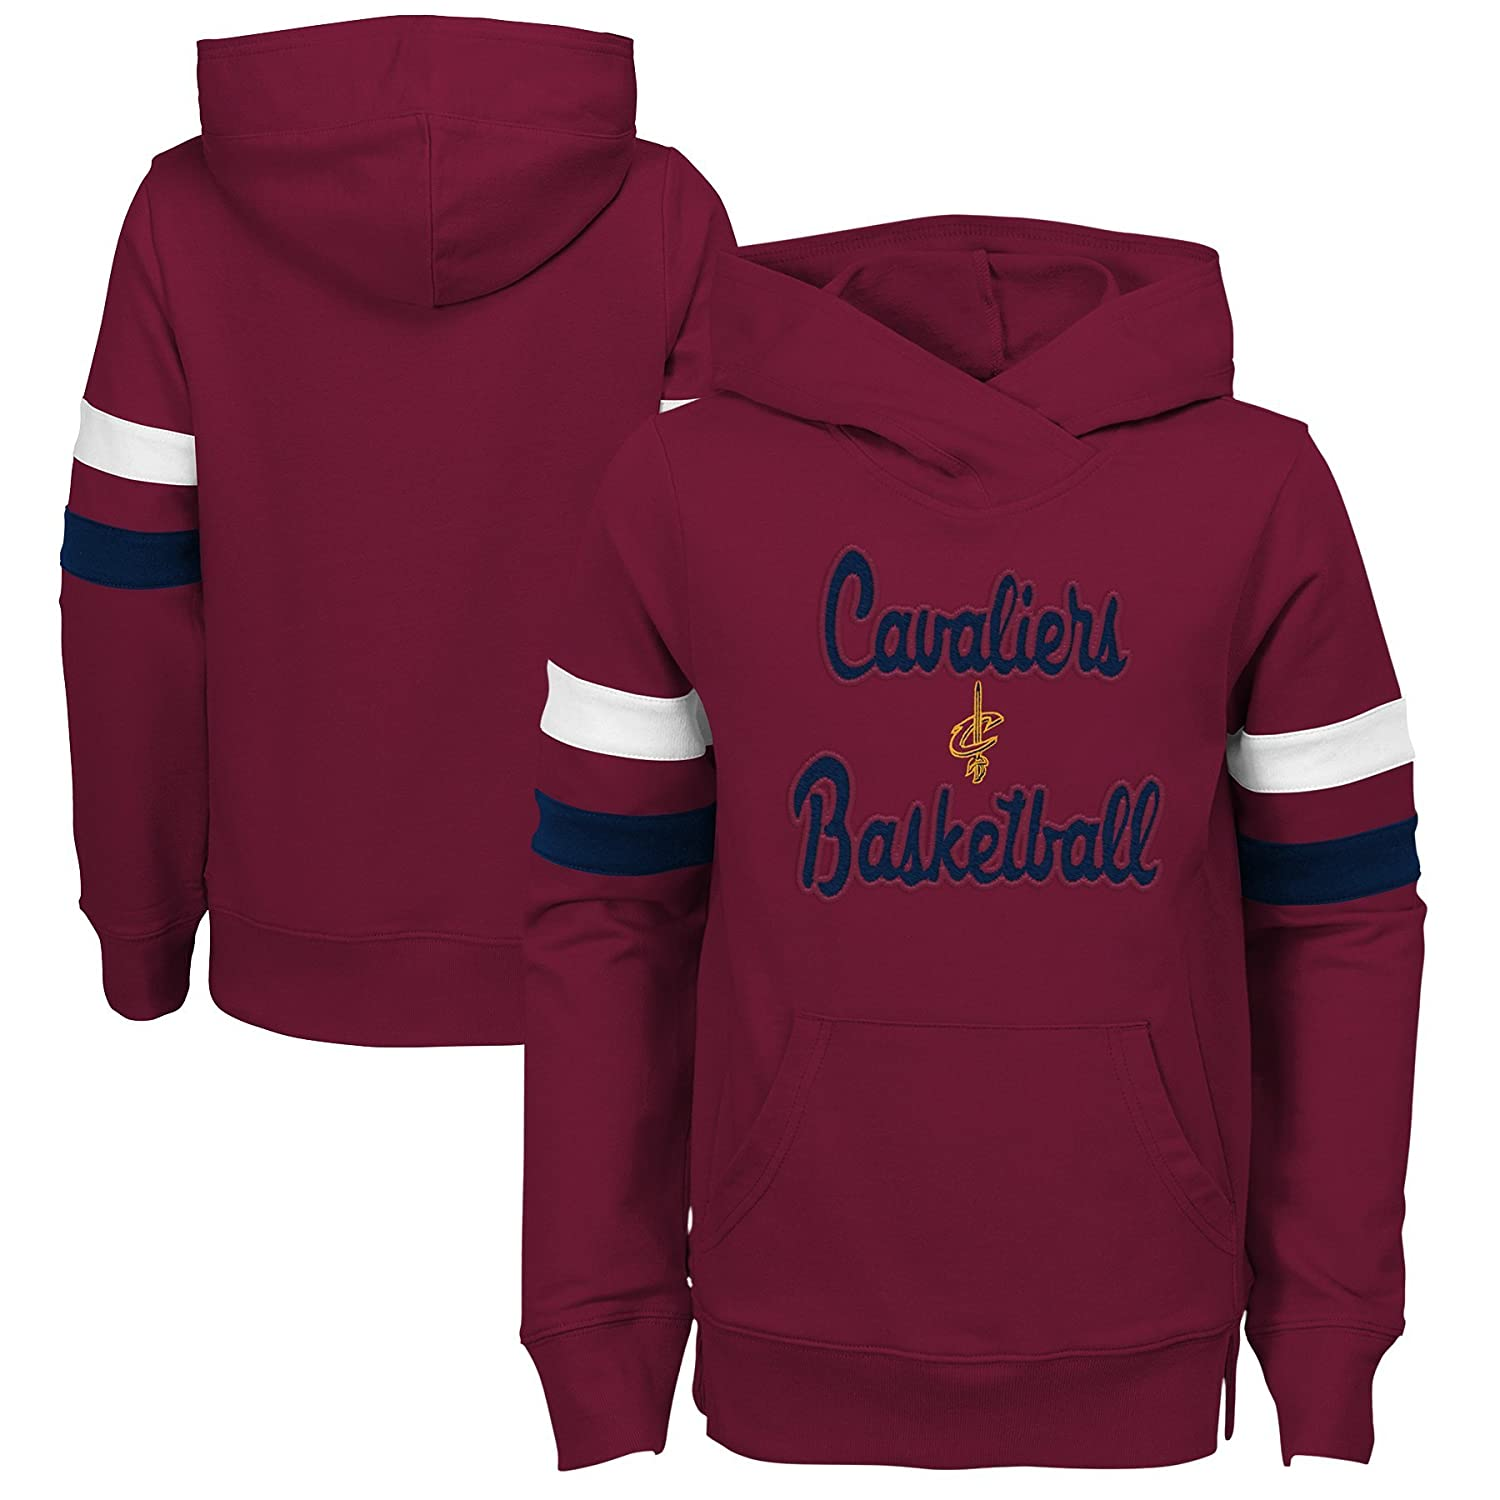 NBA by Outerstuff NBA Kids /& Youth Girls Cleveland Cavaliers Claim to Fame Overlay Hoodie 4 Kids Small Burgundy